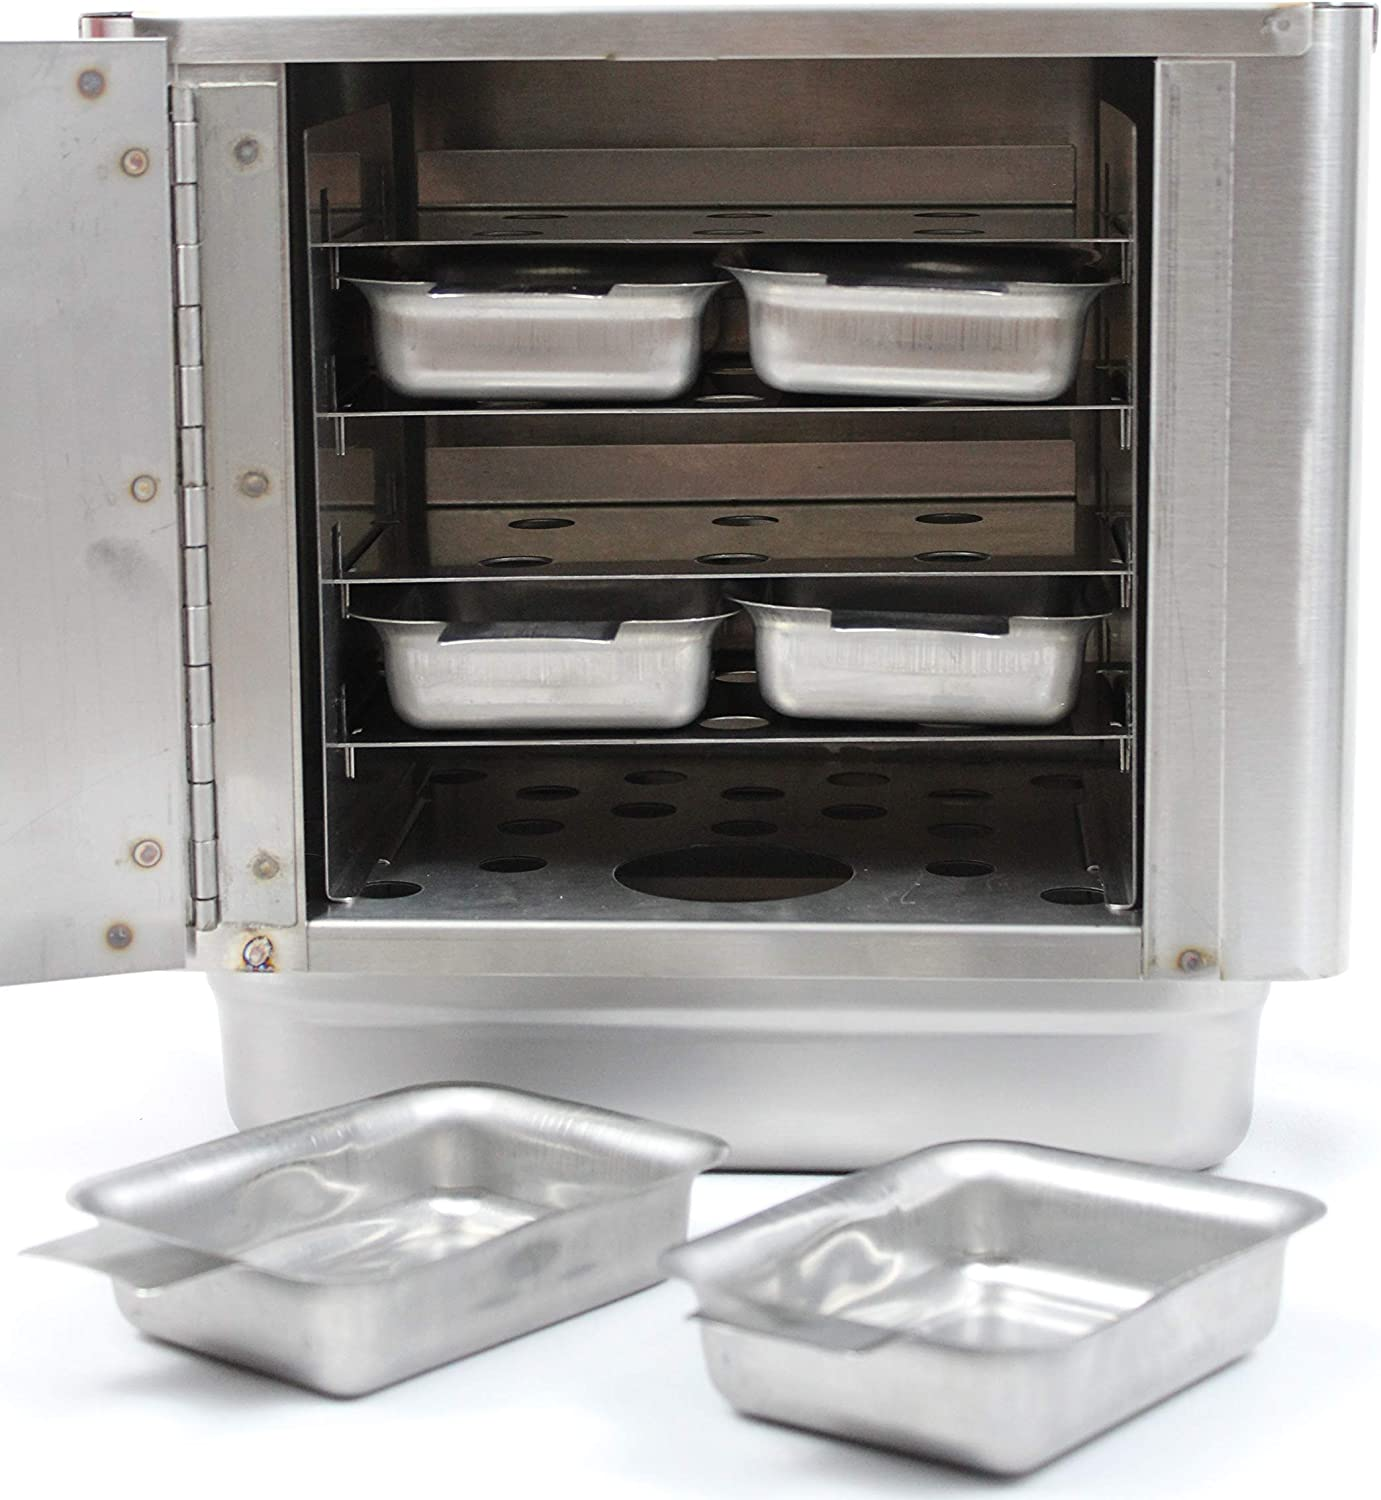 Steam Box for Cooking the World Famous Steamed Cheeseburgers